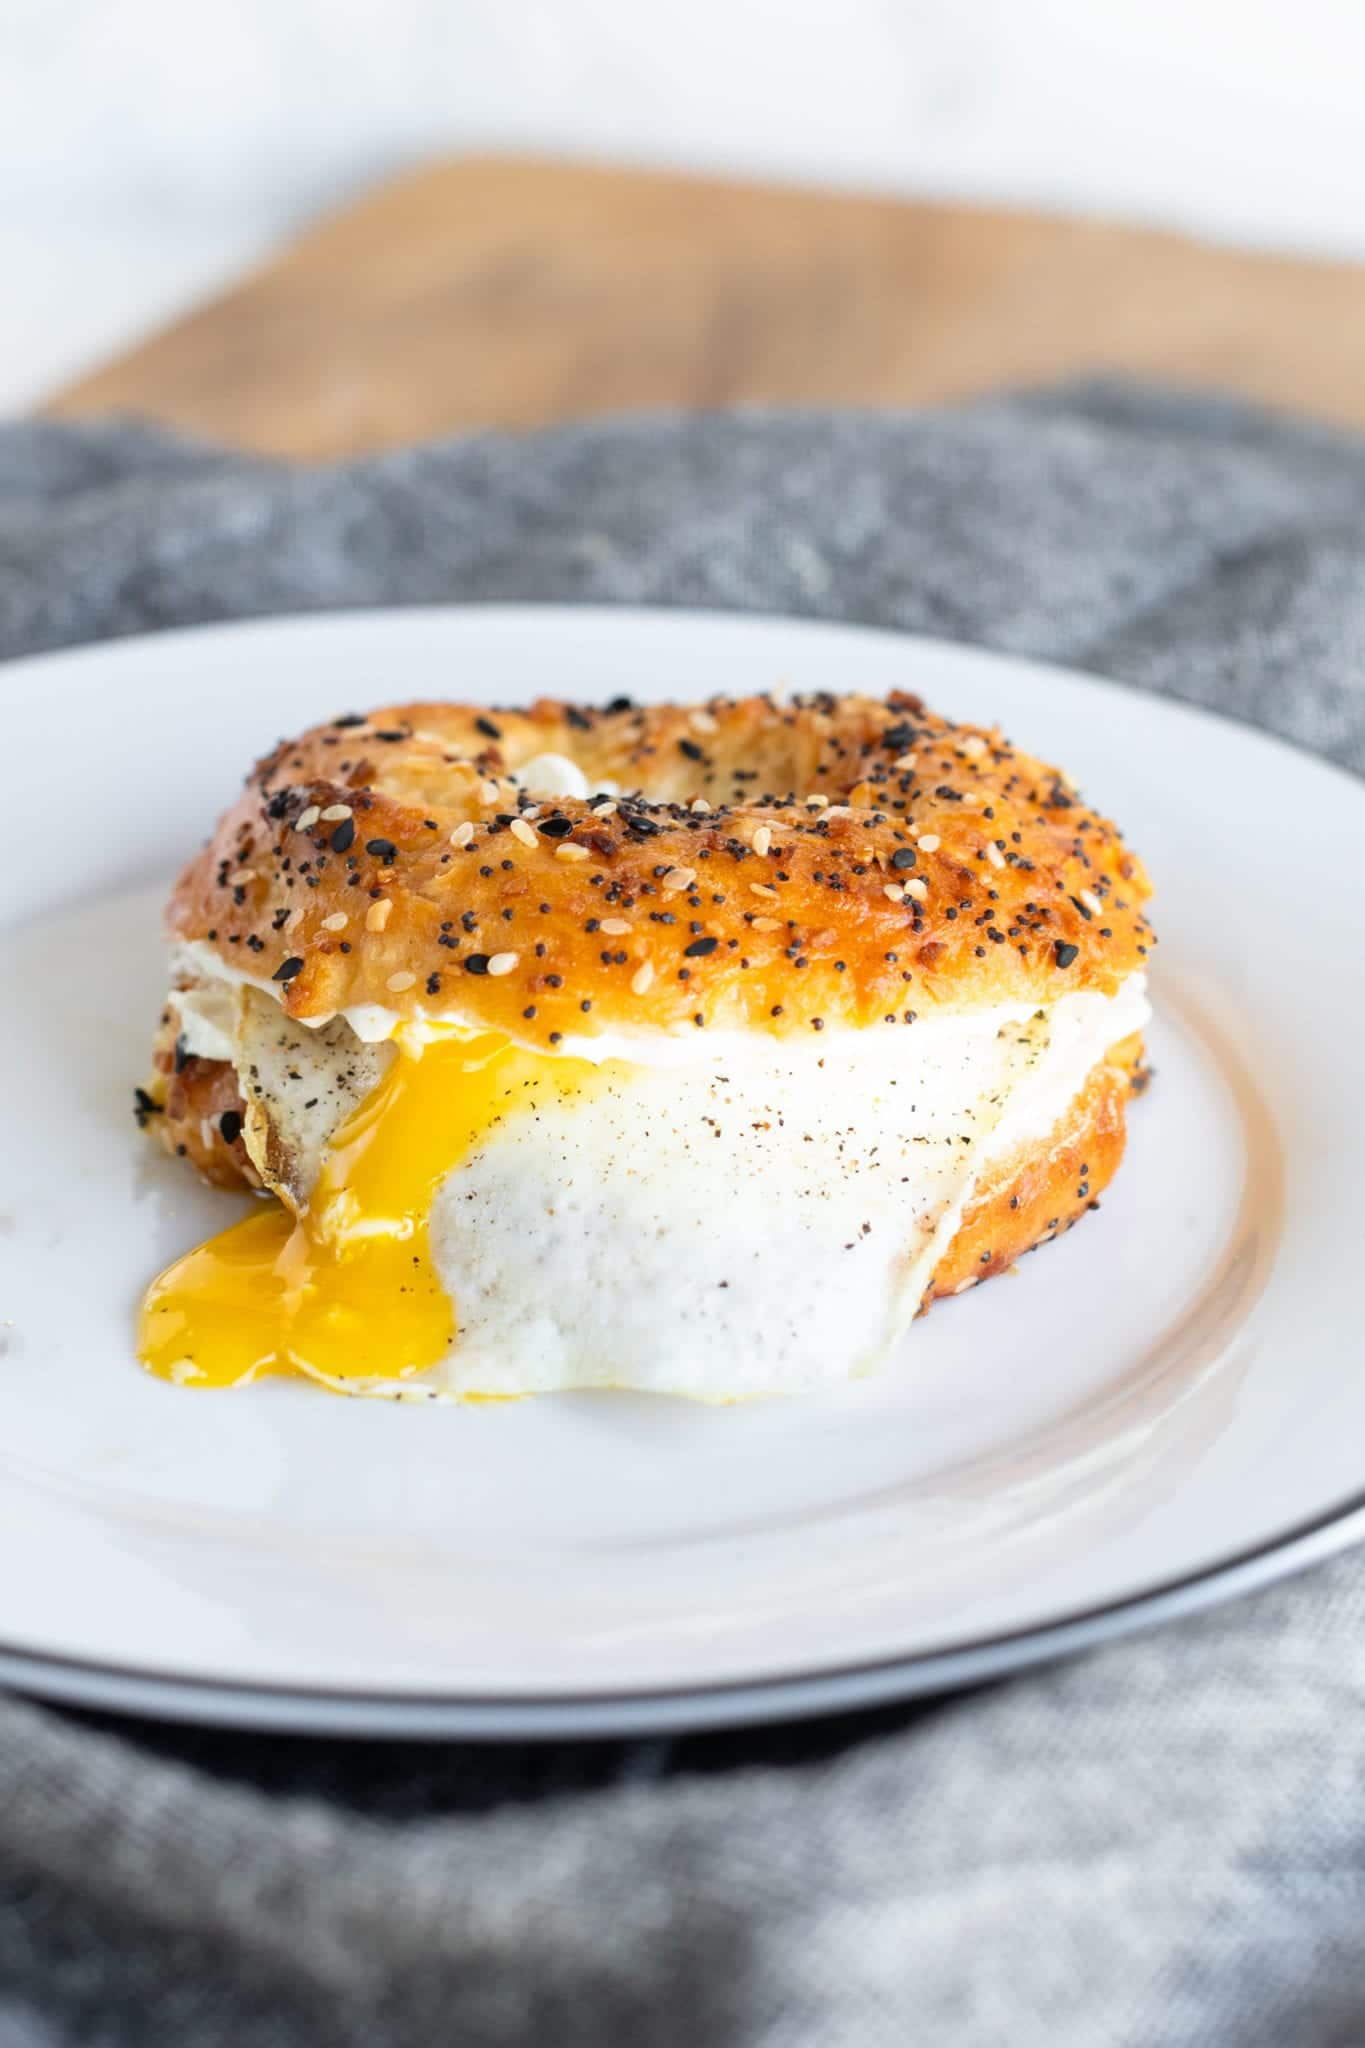 EASY Homemade Everything Bagels served as an egg and cream cheese sandwich on a white plate with denim napkin. #breakfast #easyrecipes #homemadebagels #everythingbagels #weightwatchers